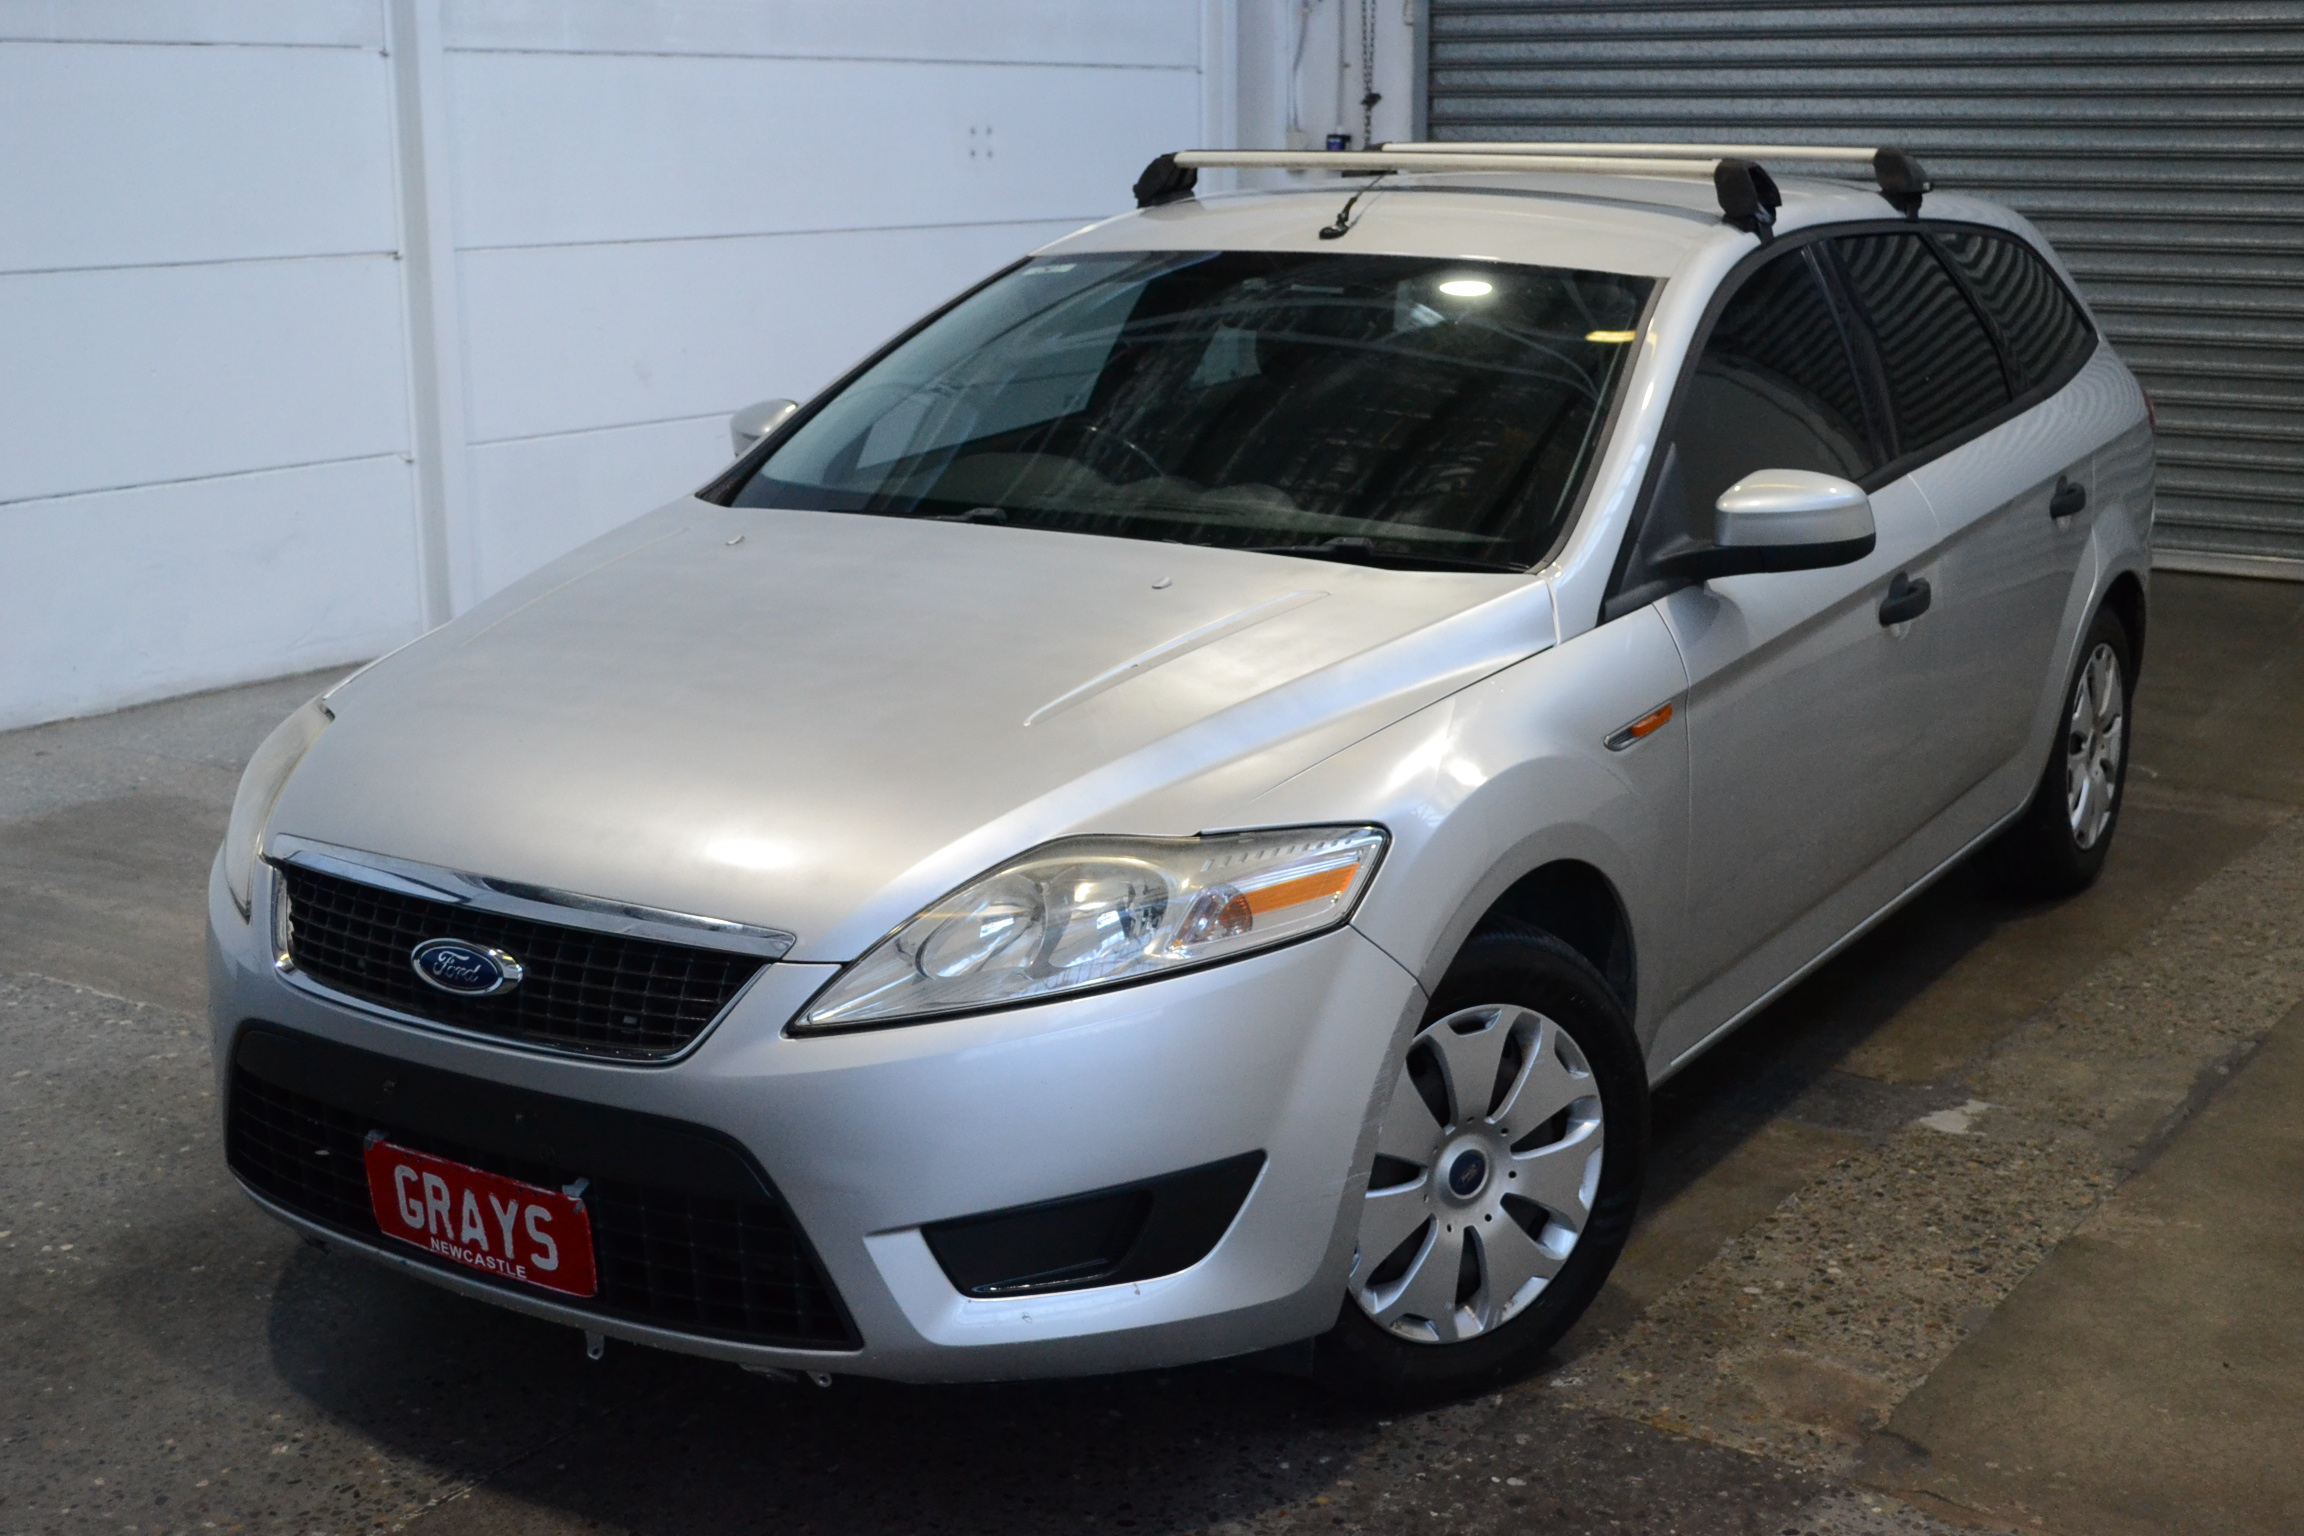 2010 Ford Mondeo LX MB Automatic Wagon